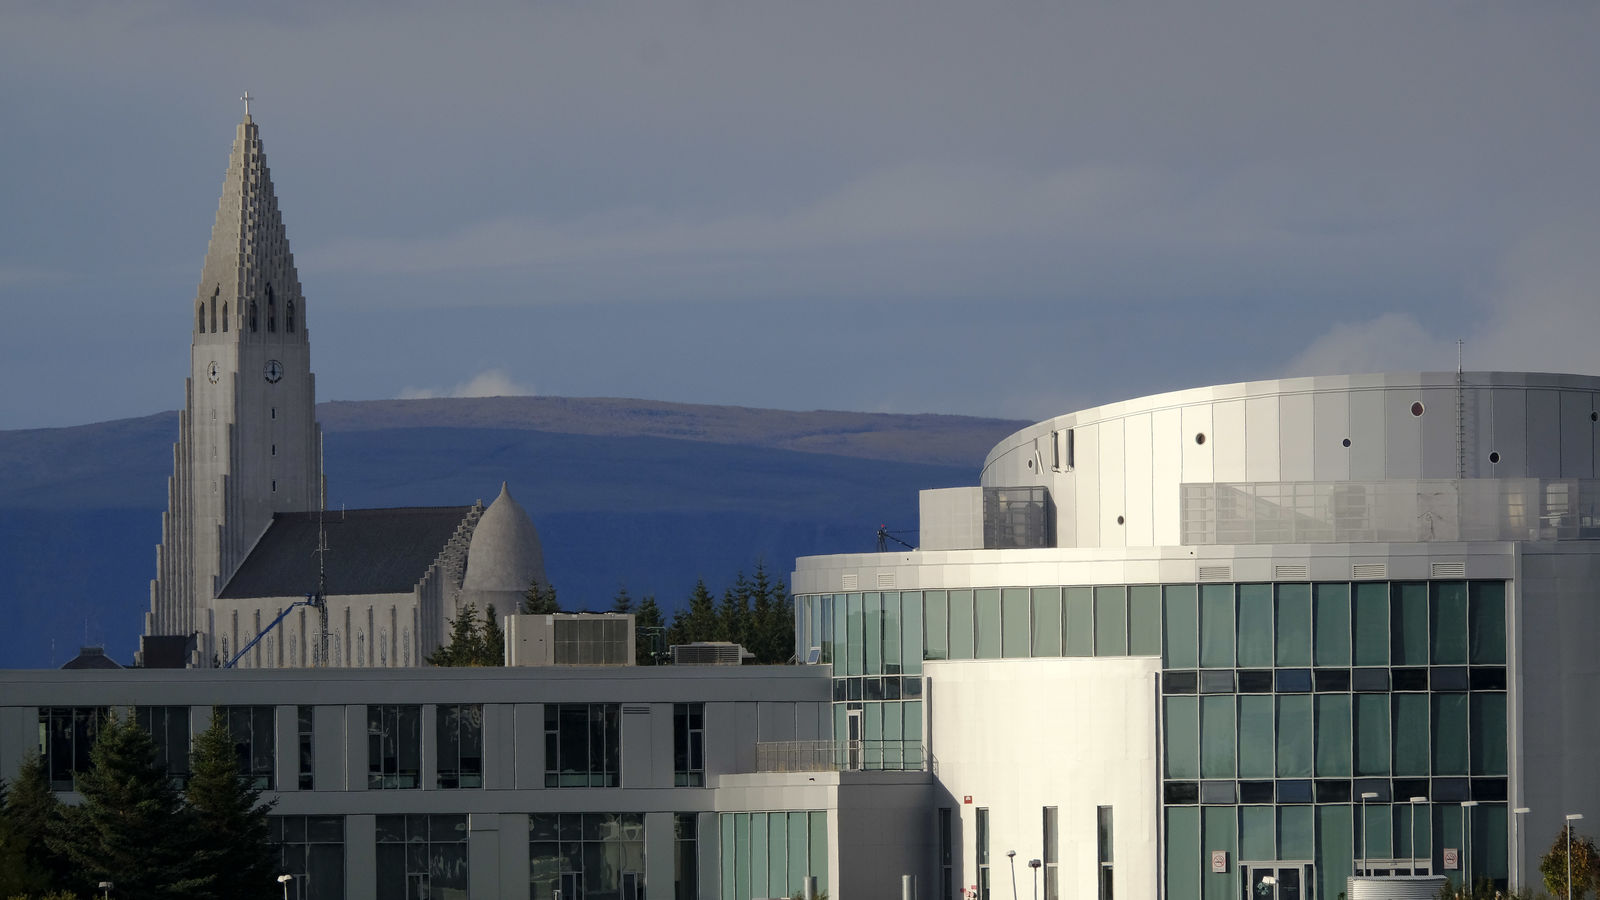 Reykjavik University campus with Hallgrímskirkja in the background